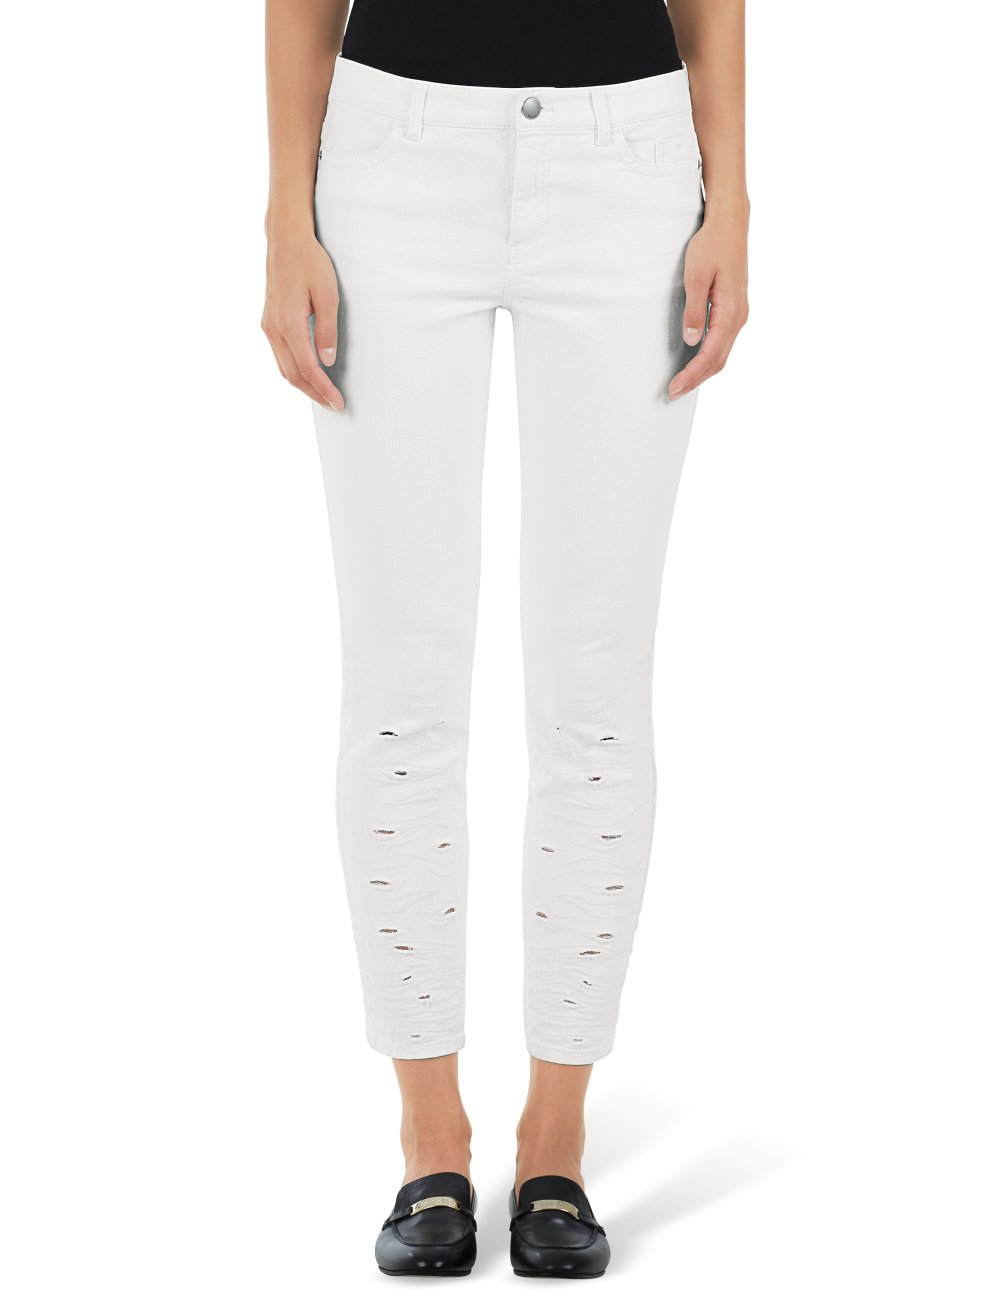 Jean Gc SlimBlancoff Cain Marc 82 white Collections 23 Femme 110W36 D06 kXuOPZi